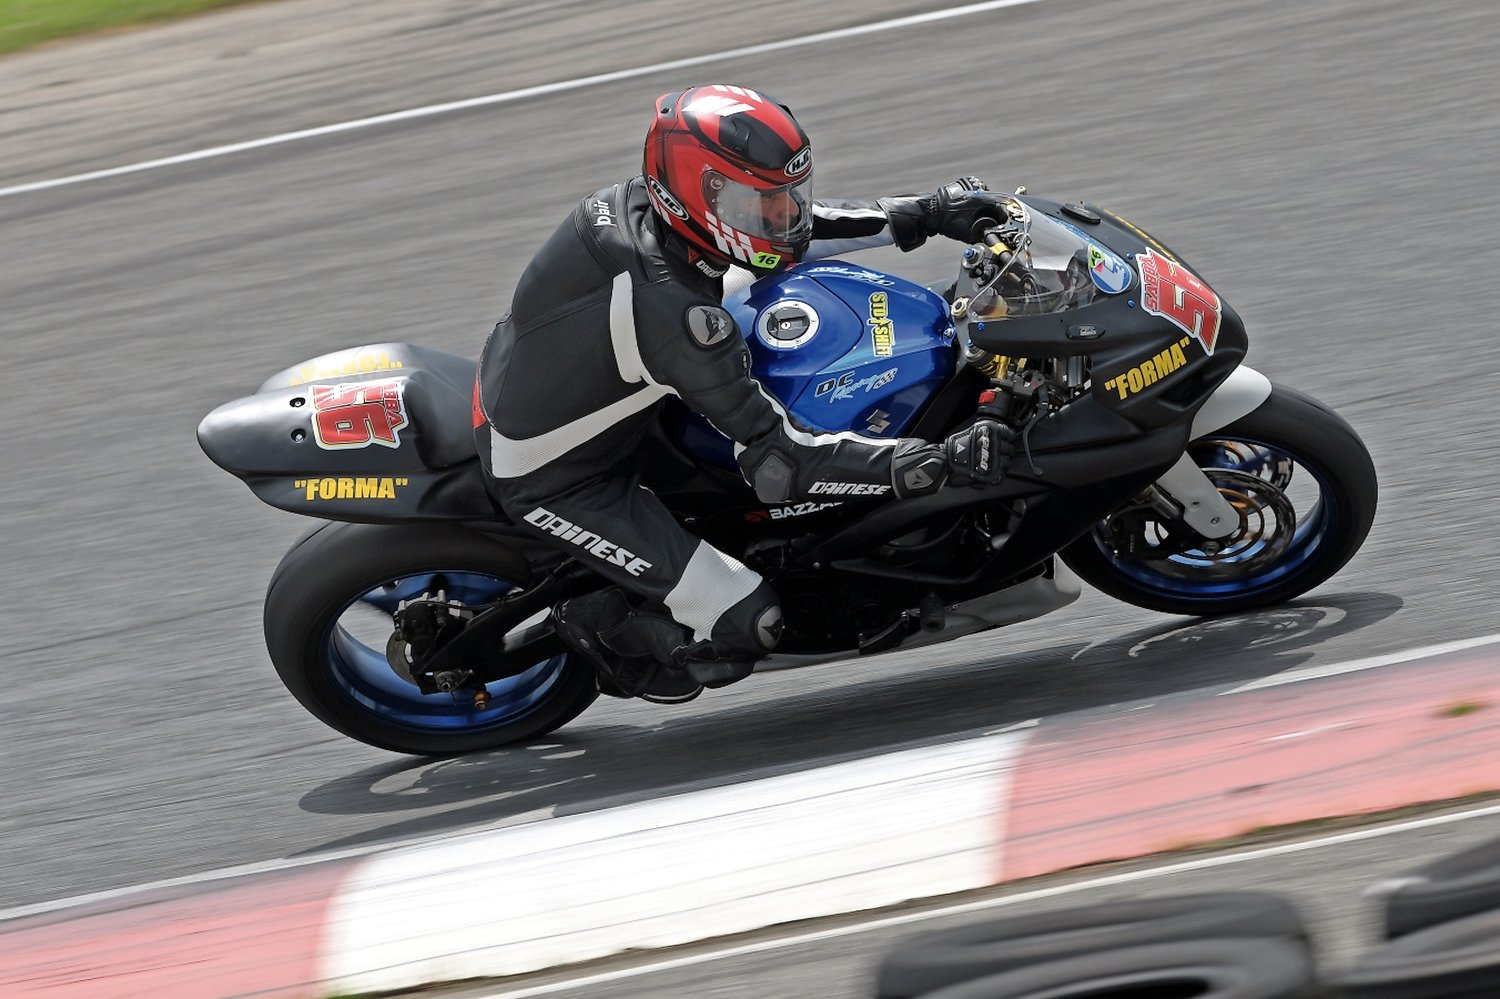 Motorcycle club racer Ron Rabinovich, of Merrick, couldn't escape the click of a camera while racing on the track at New Jersey Motorsports Park in June. A self-described adrenaline junkie, Rabinovich has raced motorcycles for 10 years.